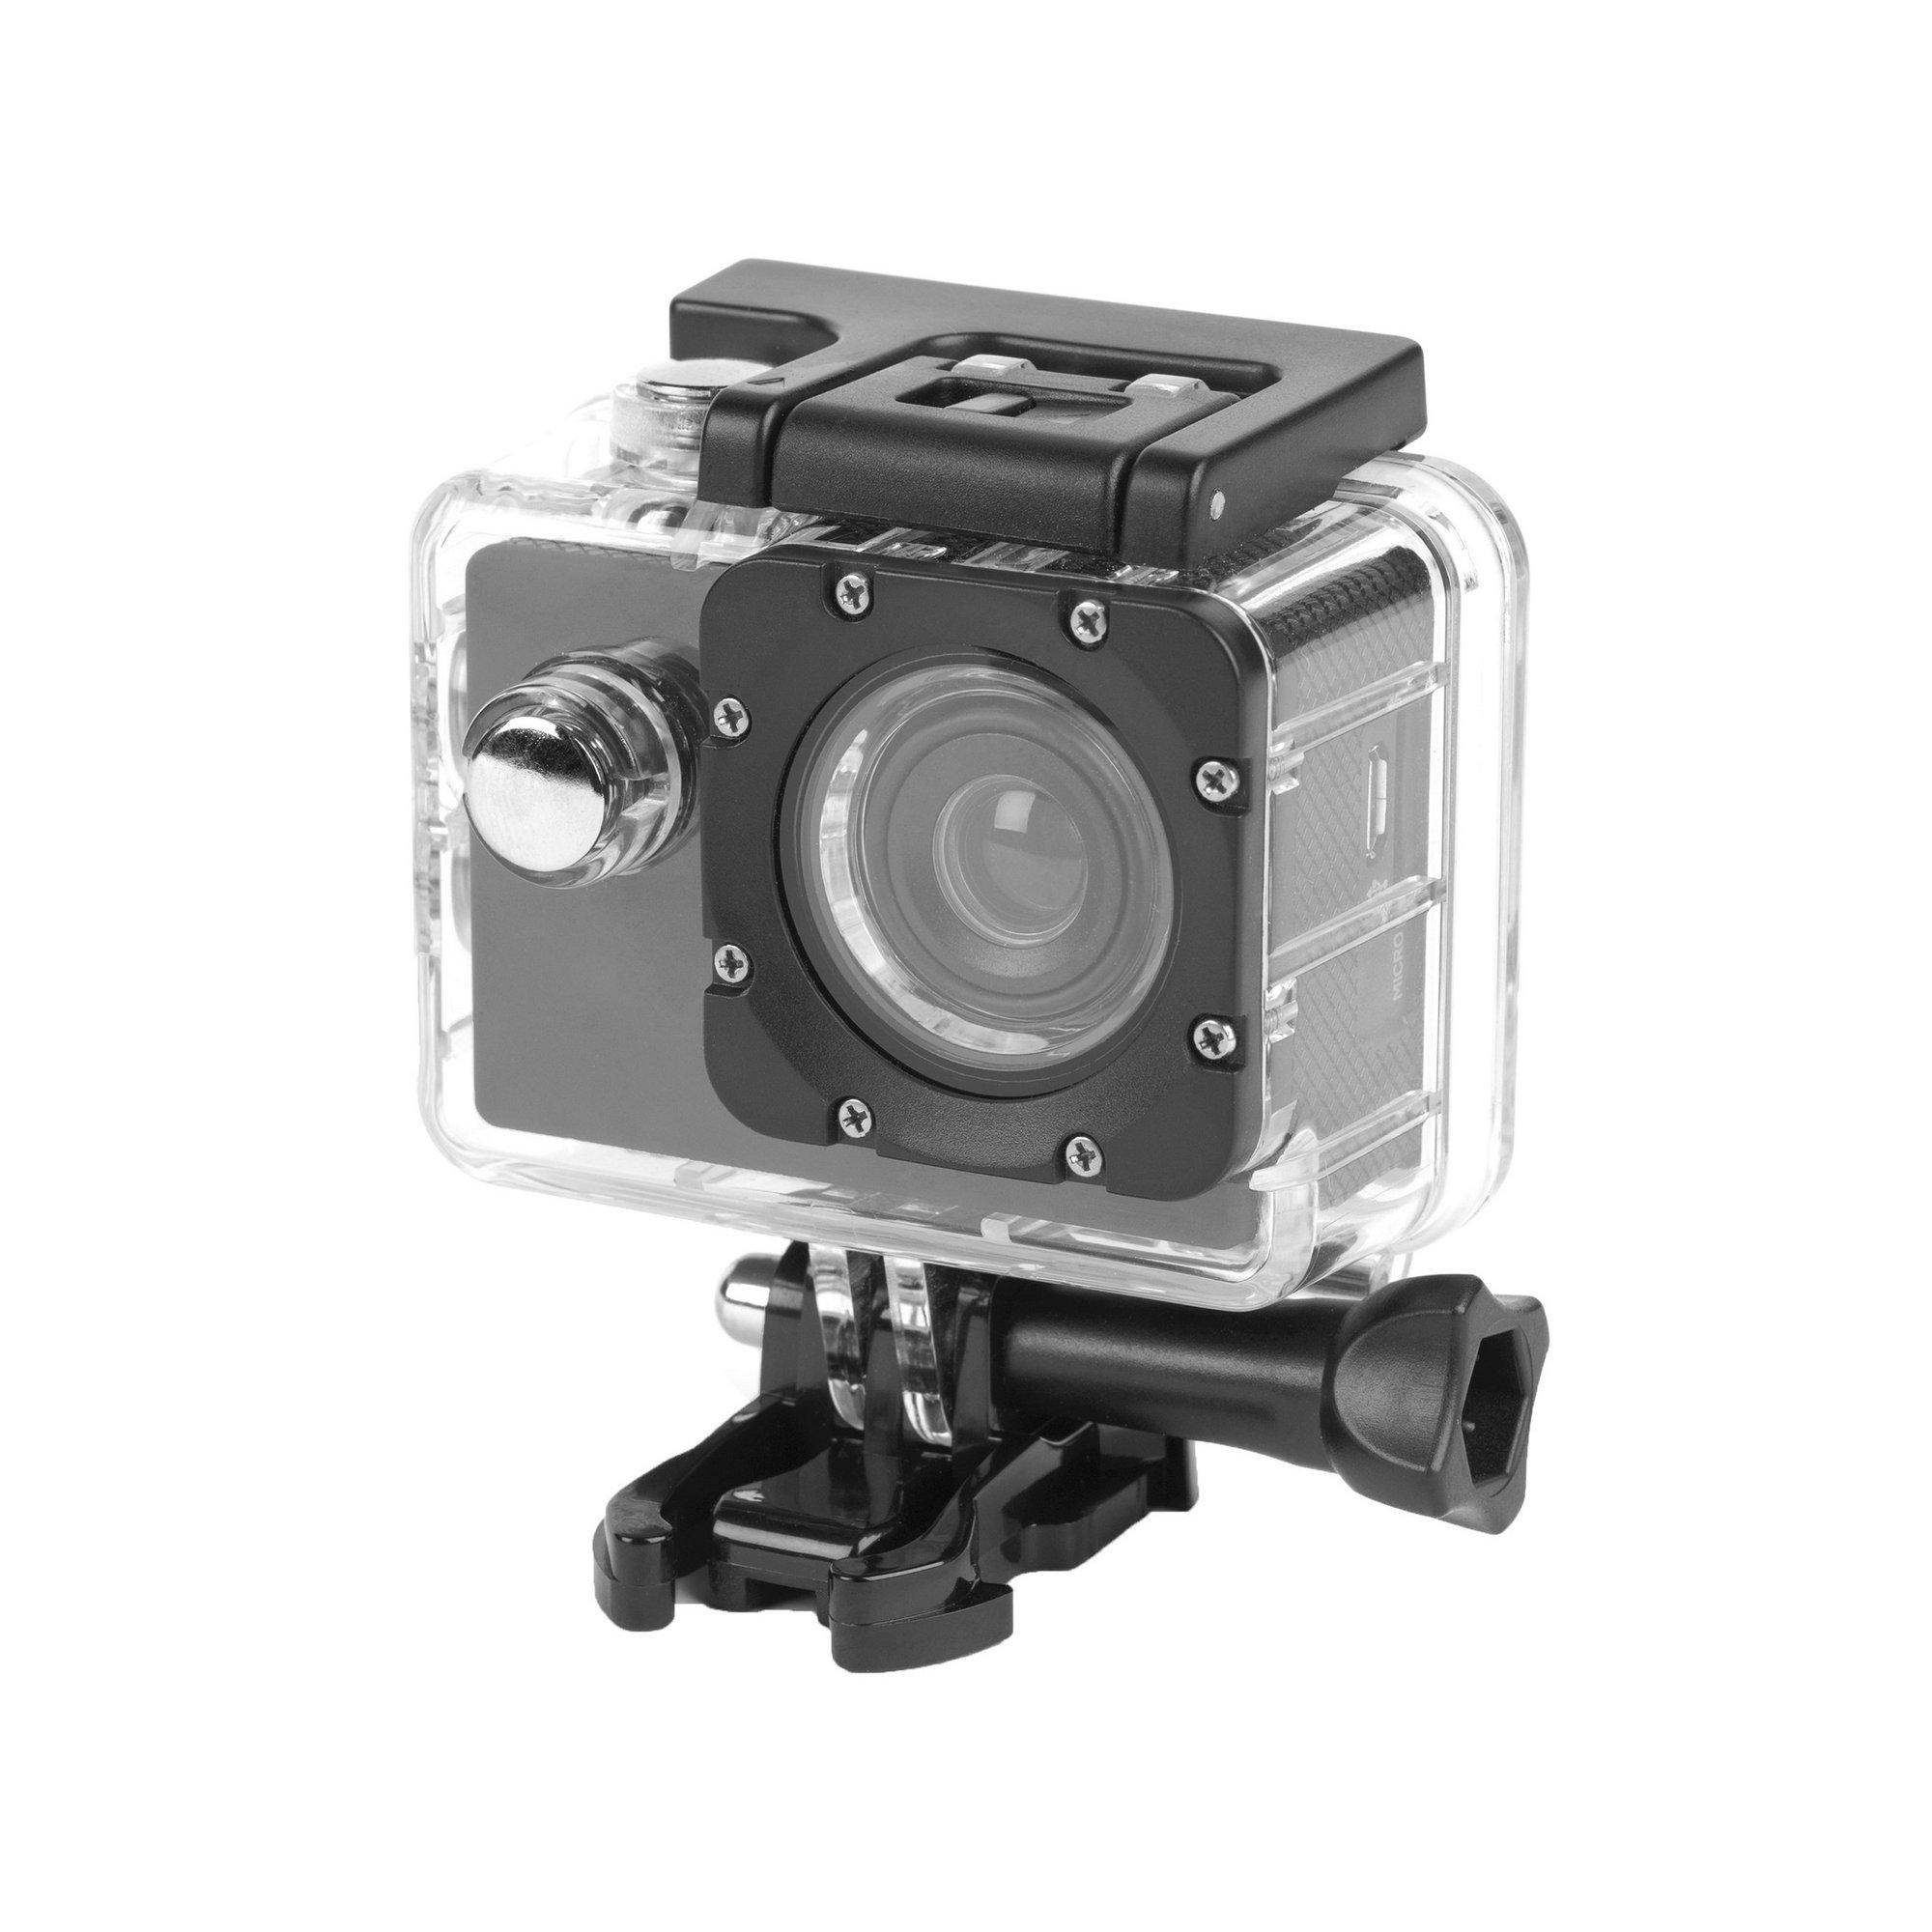 Image of Intempo Full HD Action Camera